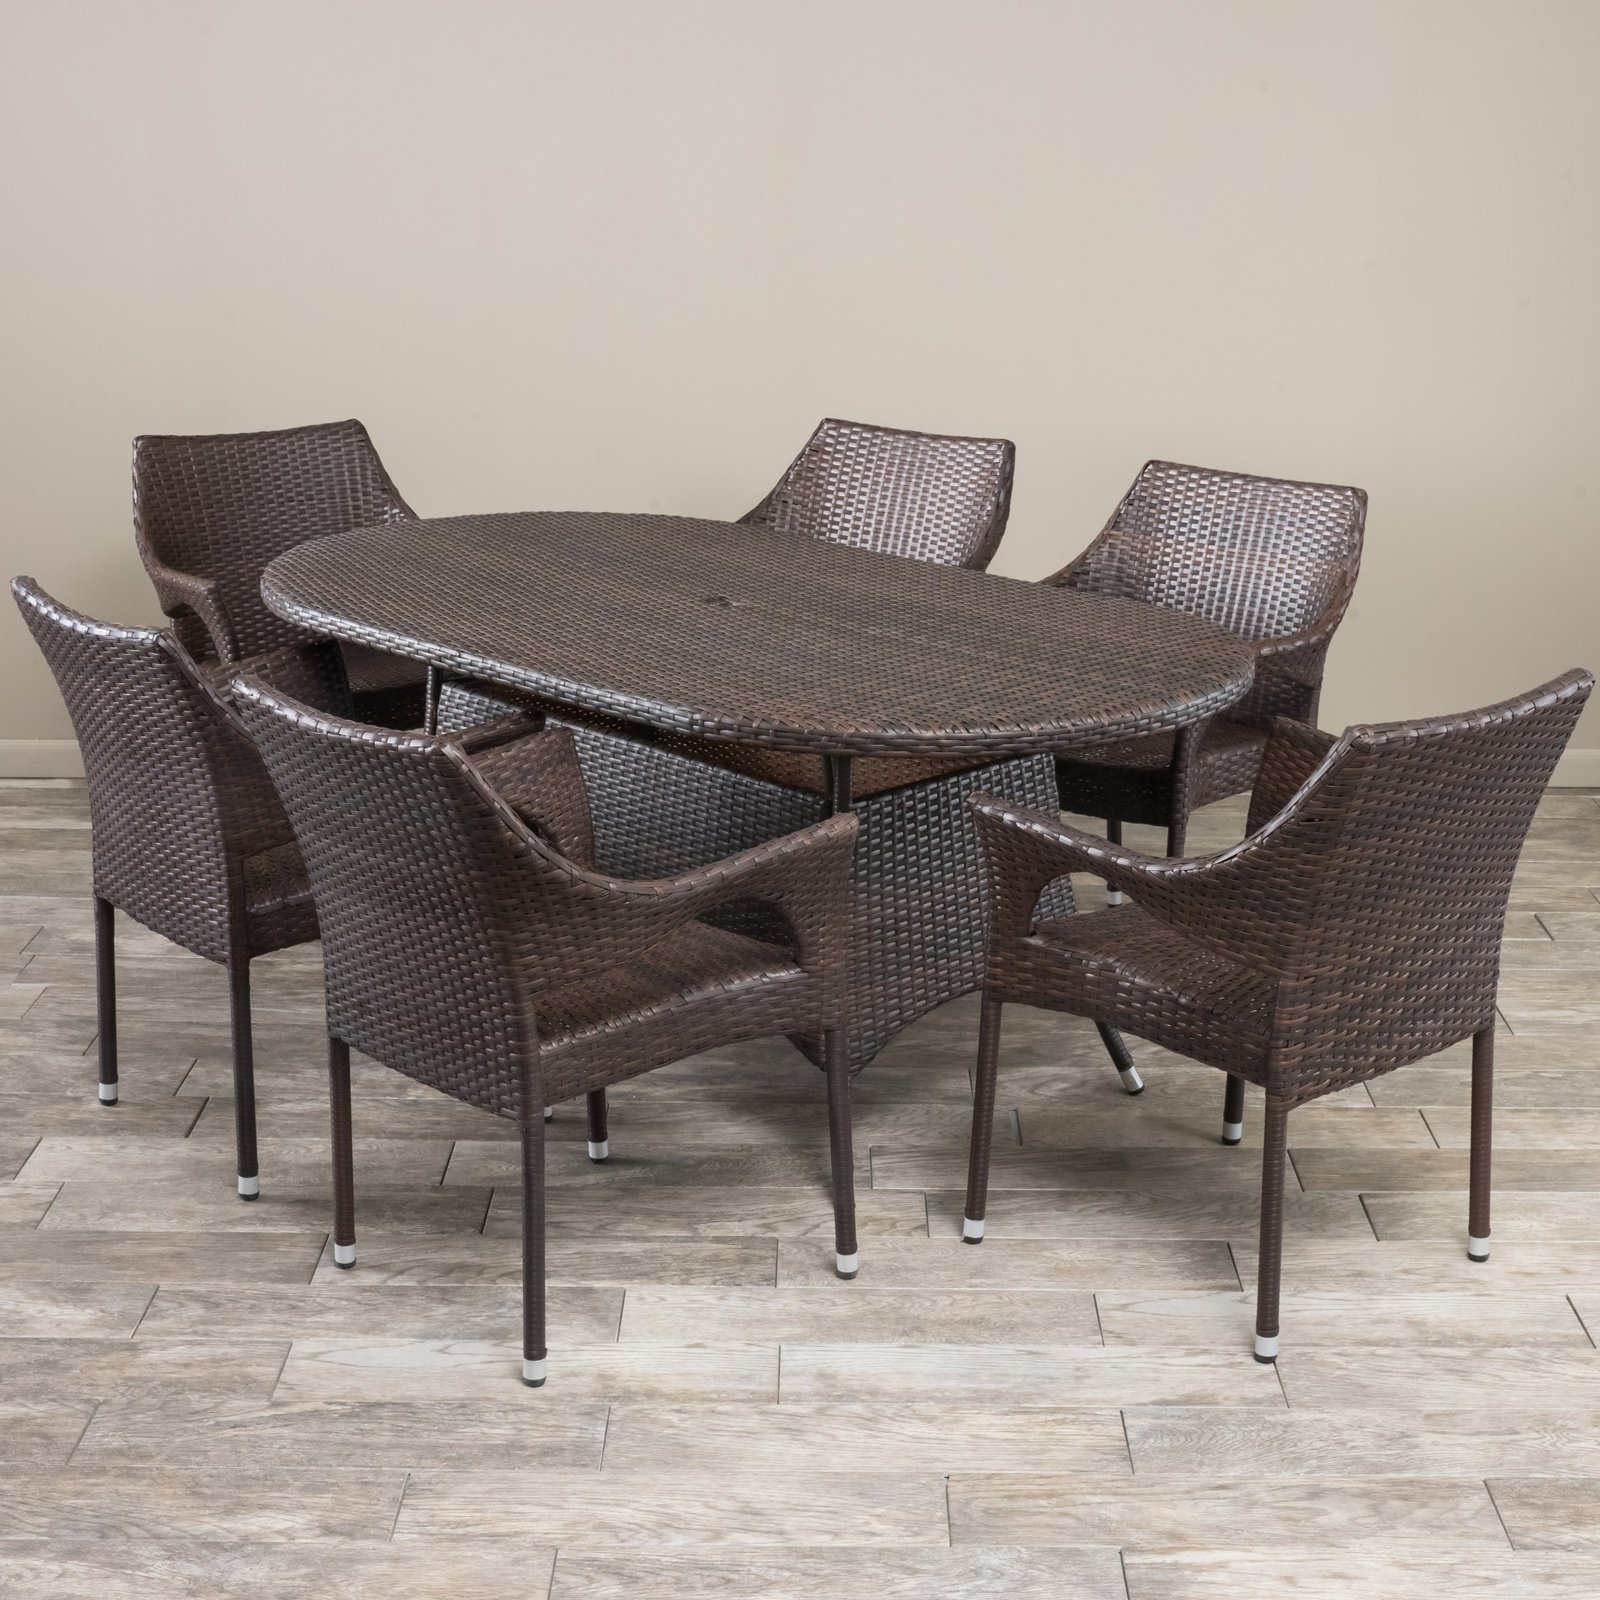 Daisy Wicker 7 Piece Oval Patio Dining Set